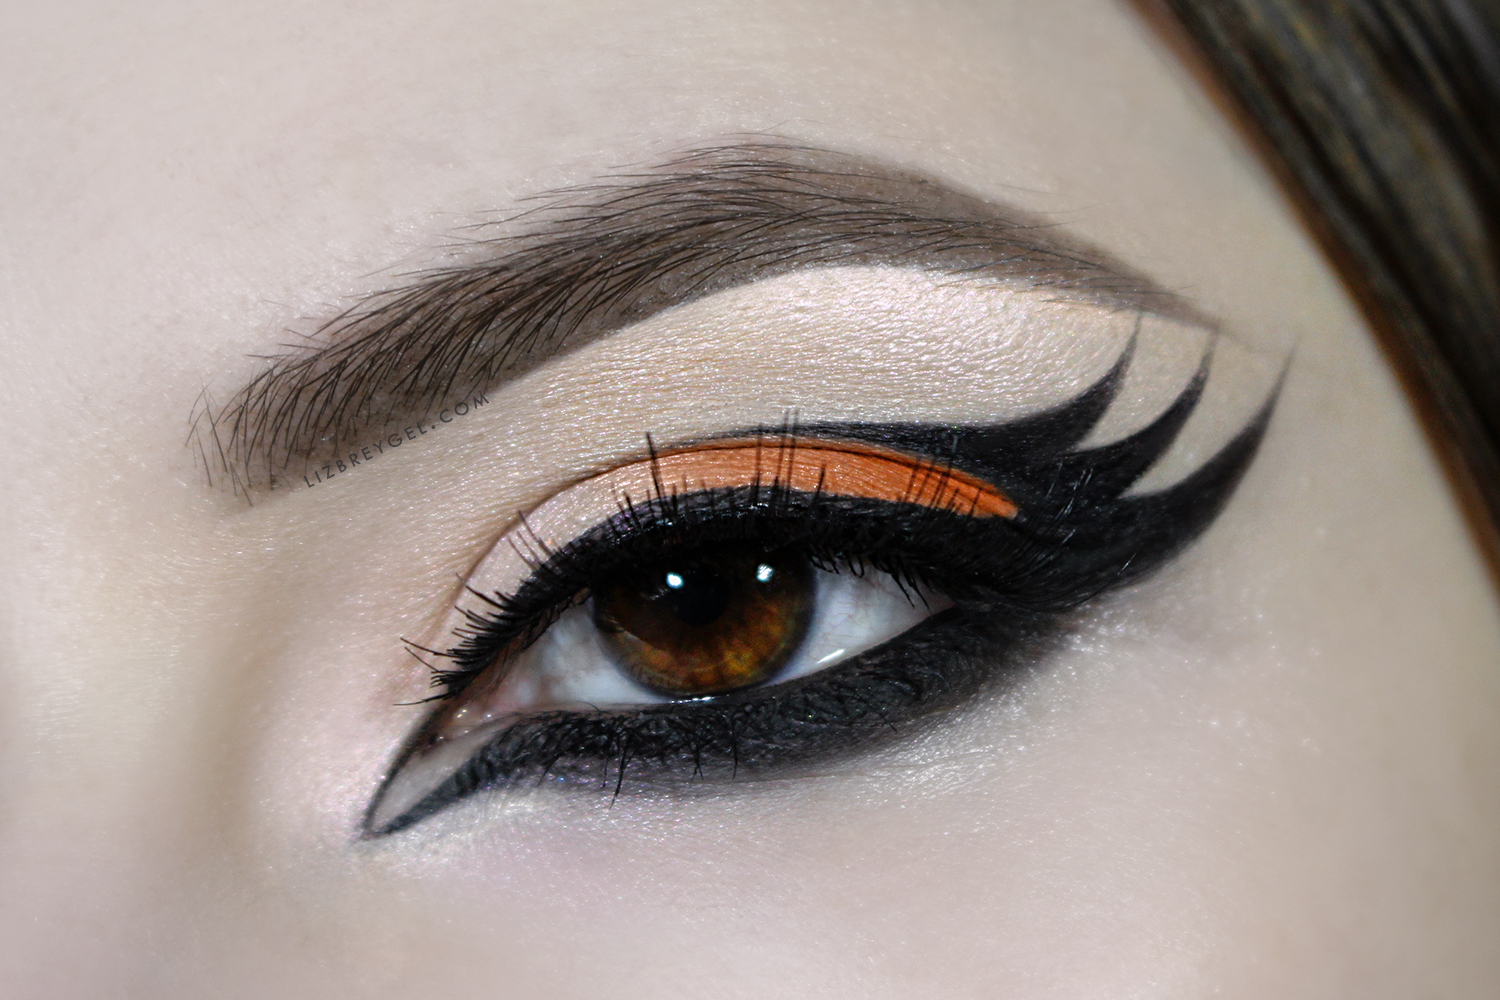 a close-up picture of an eye with a dramatic, Gothic eyeliner makeup.